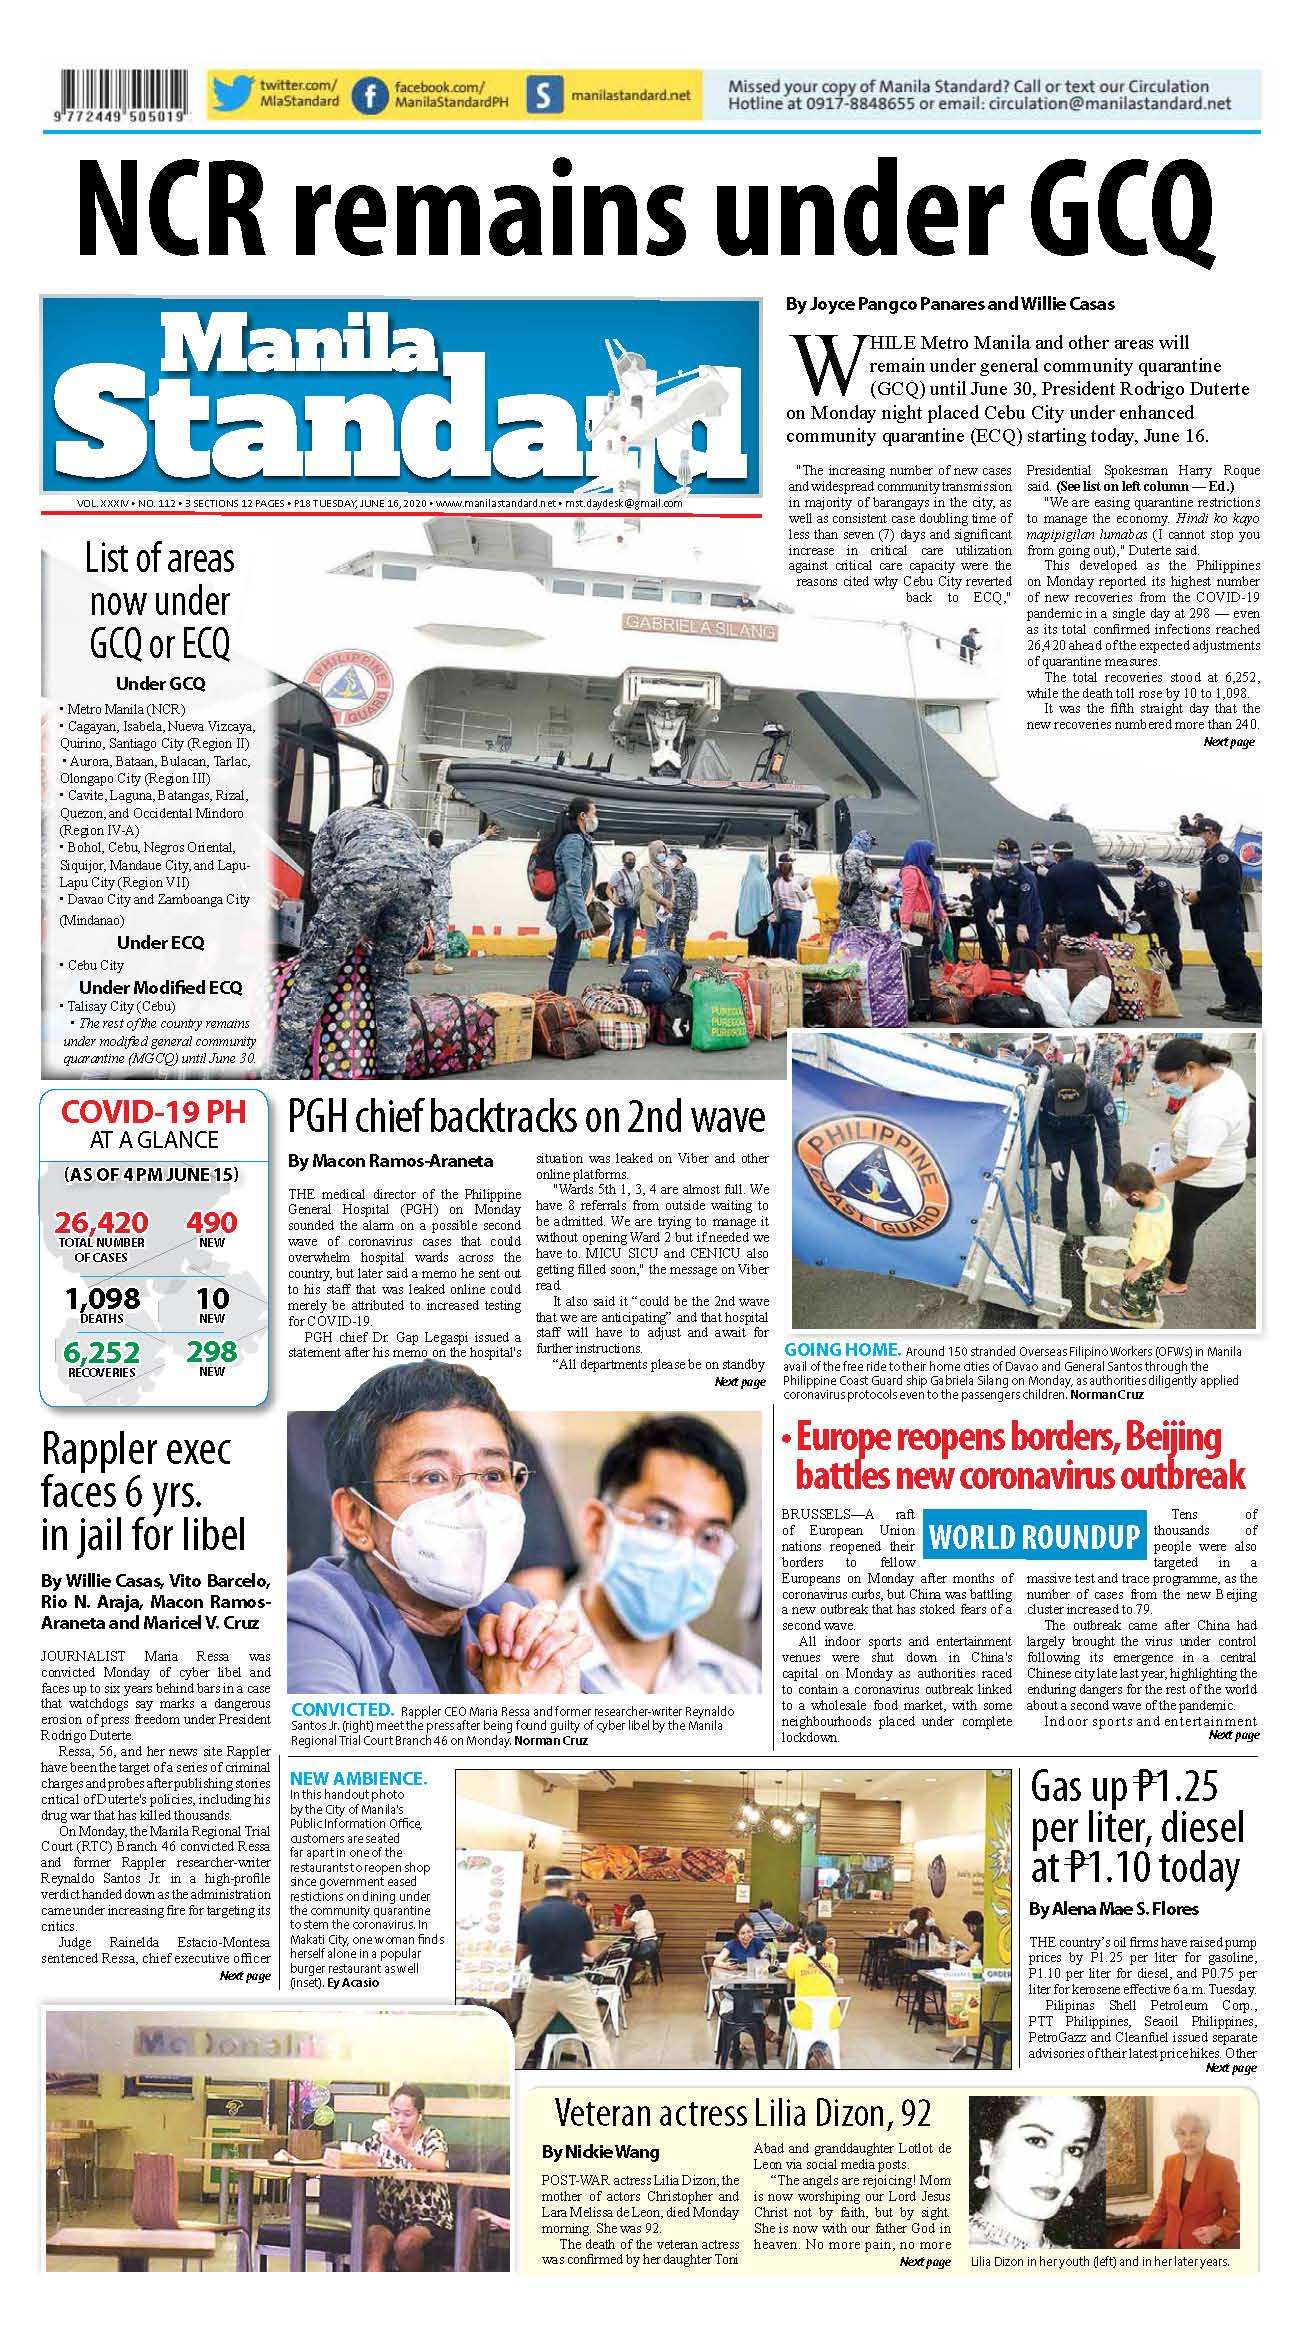 Tuesday Print Edition (06/16/2020)